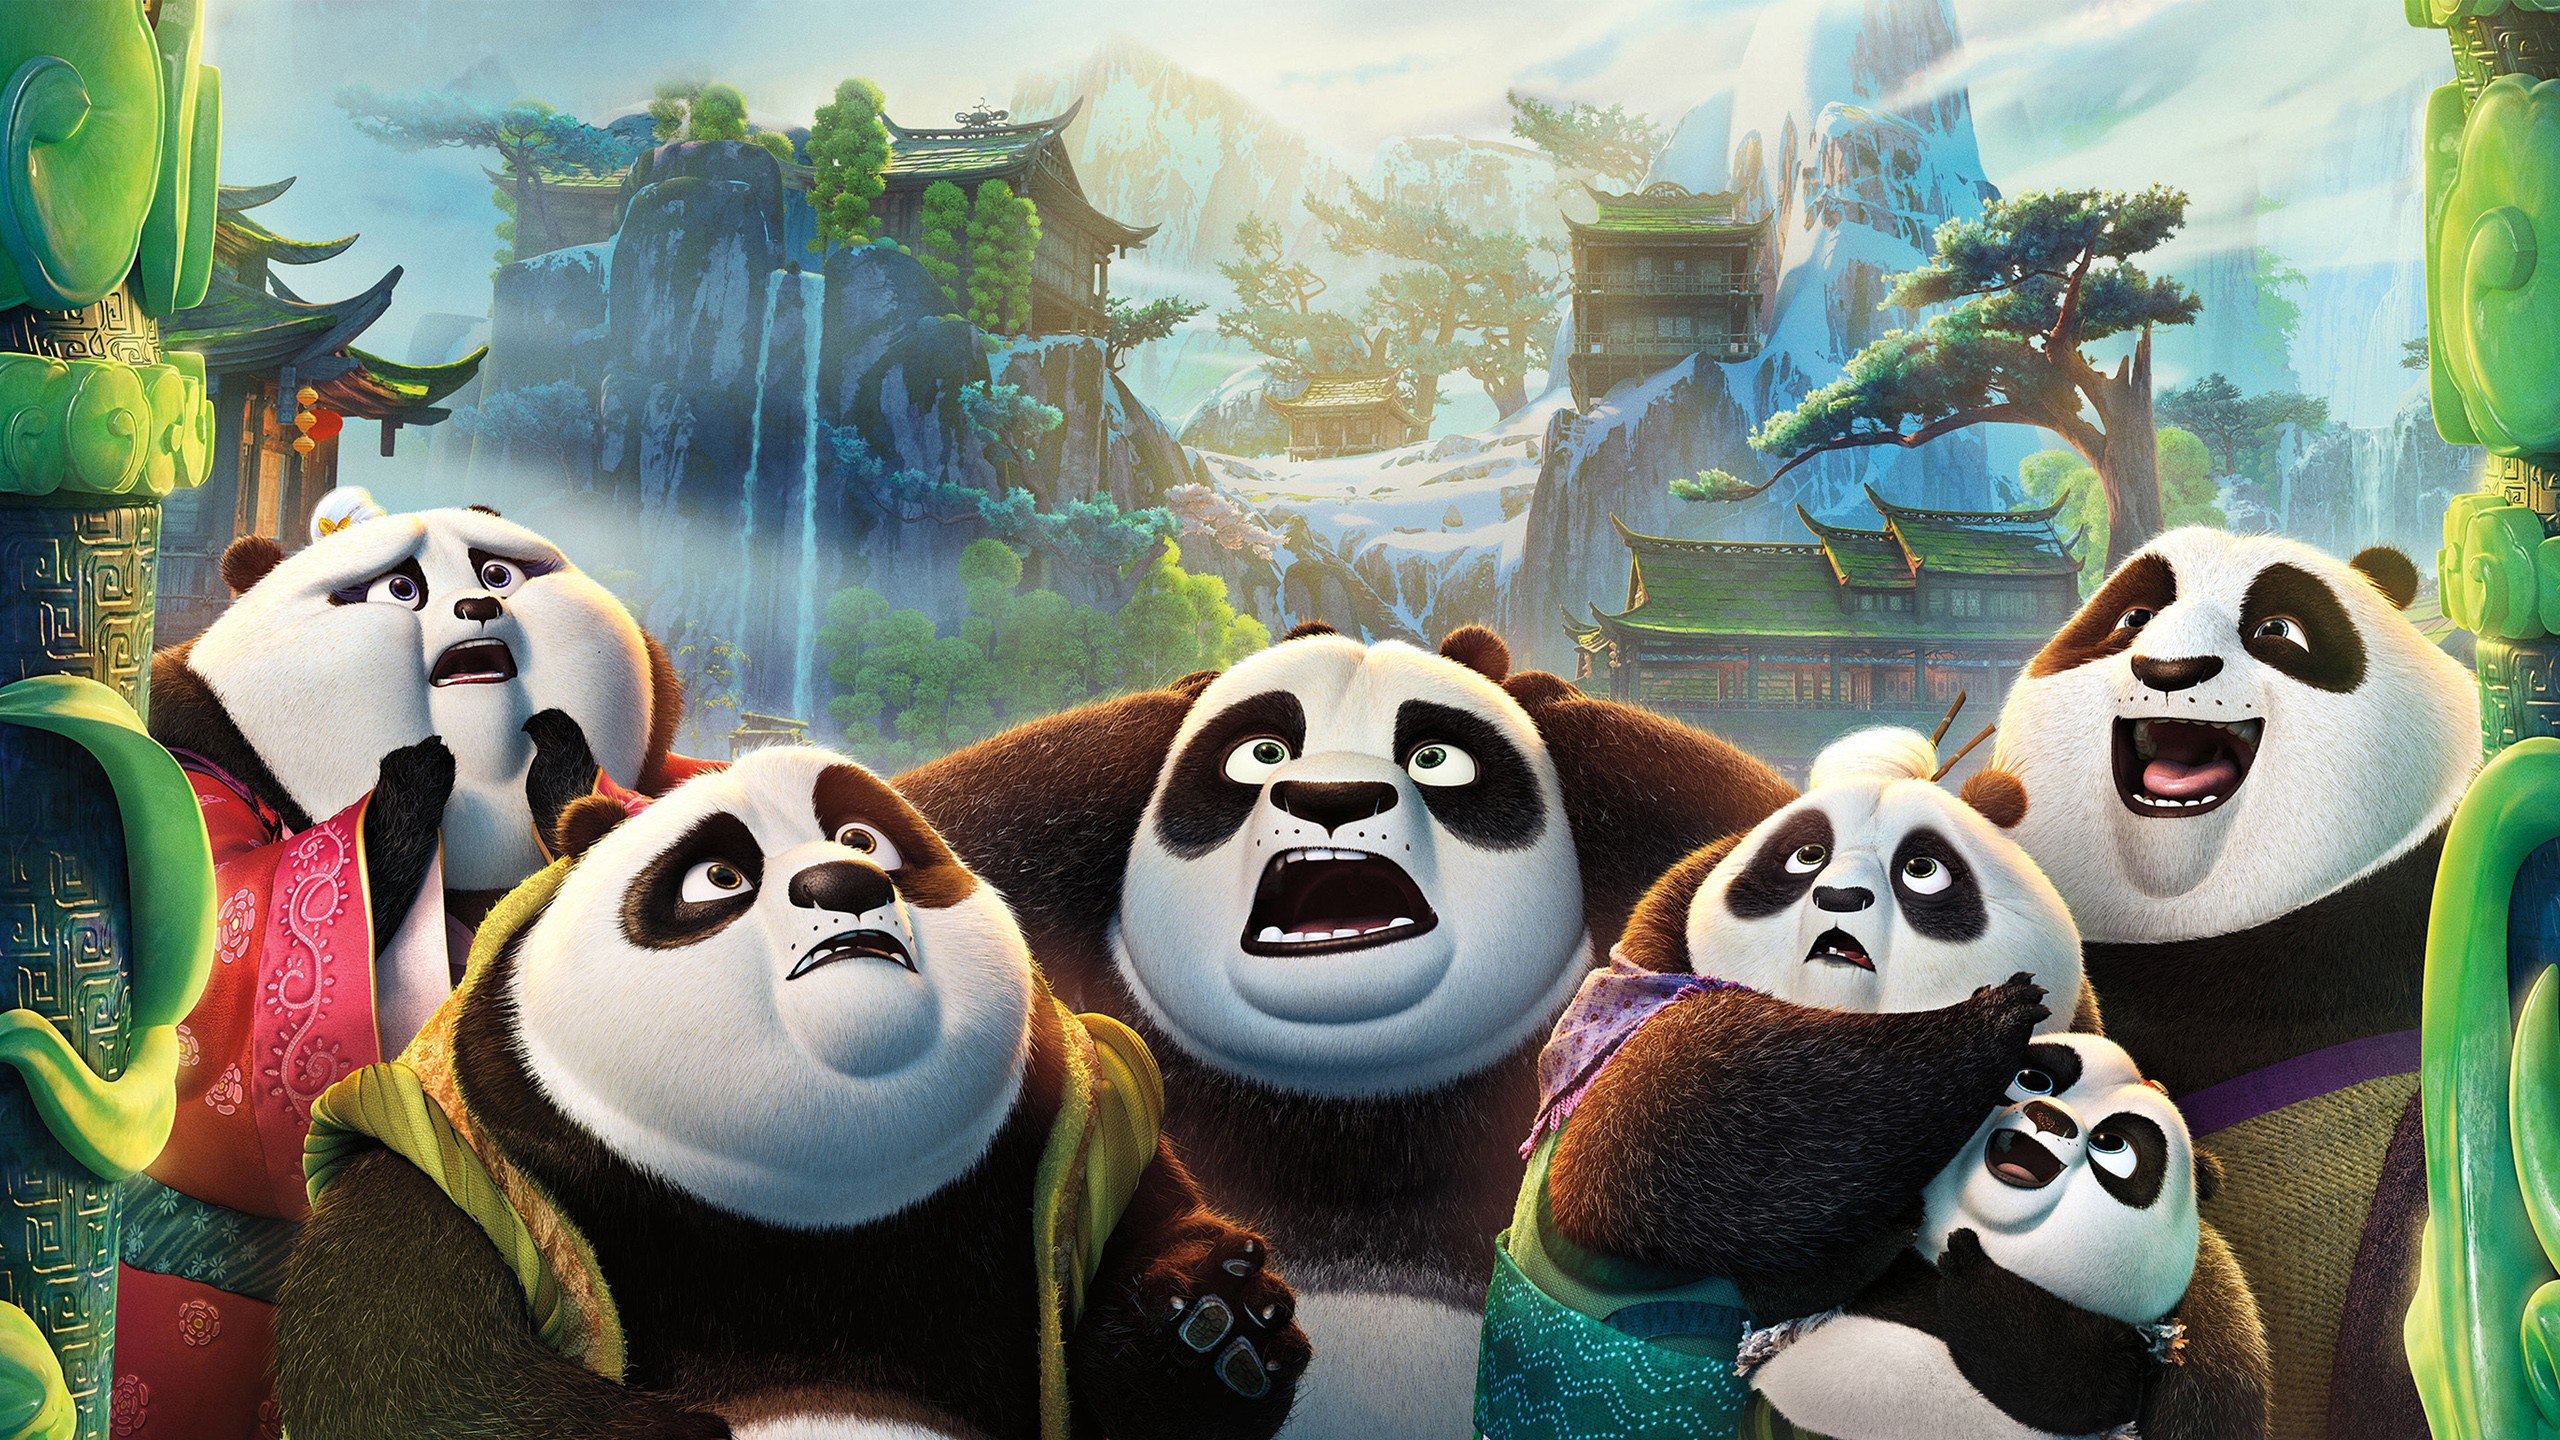 Kung Fu Panda Wallpapers With Quotes Wallpaper Kung Fu Panda 3 Movies 7124